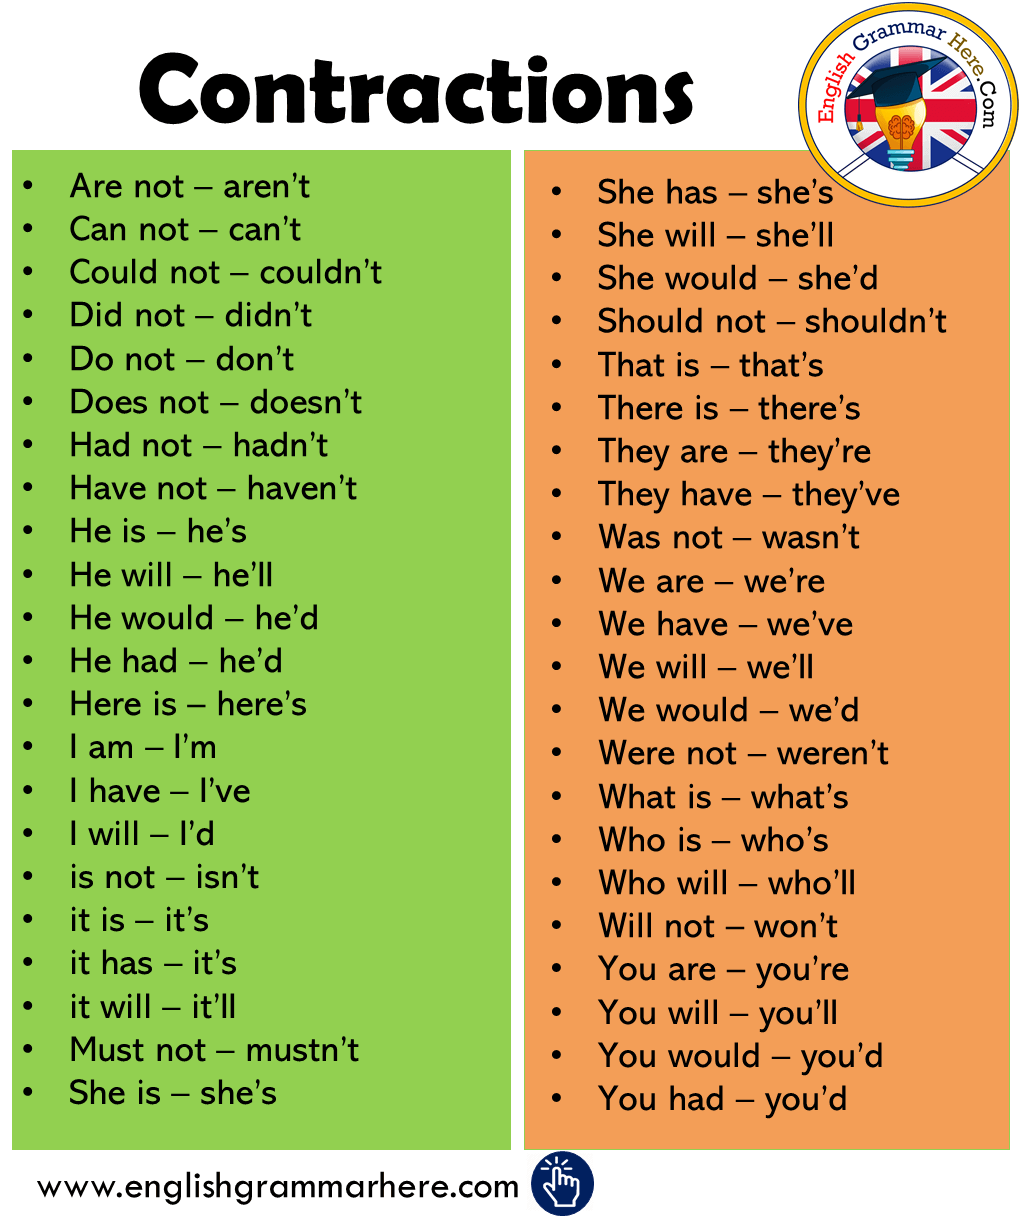 Contractions List in English - English Grammar Here